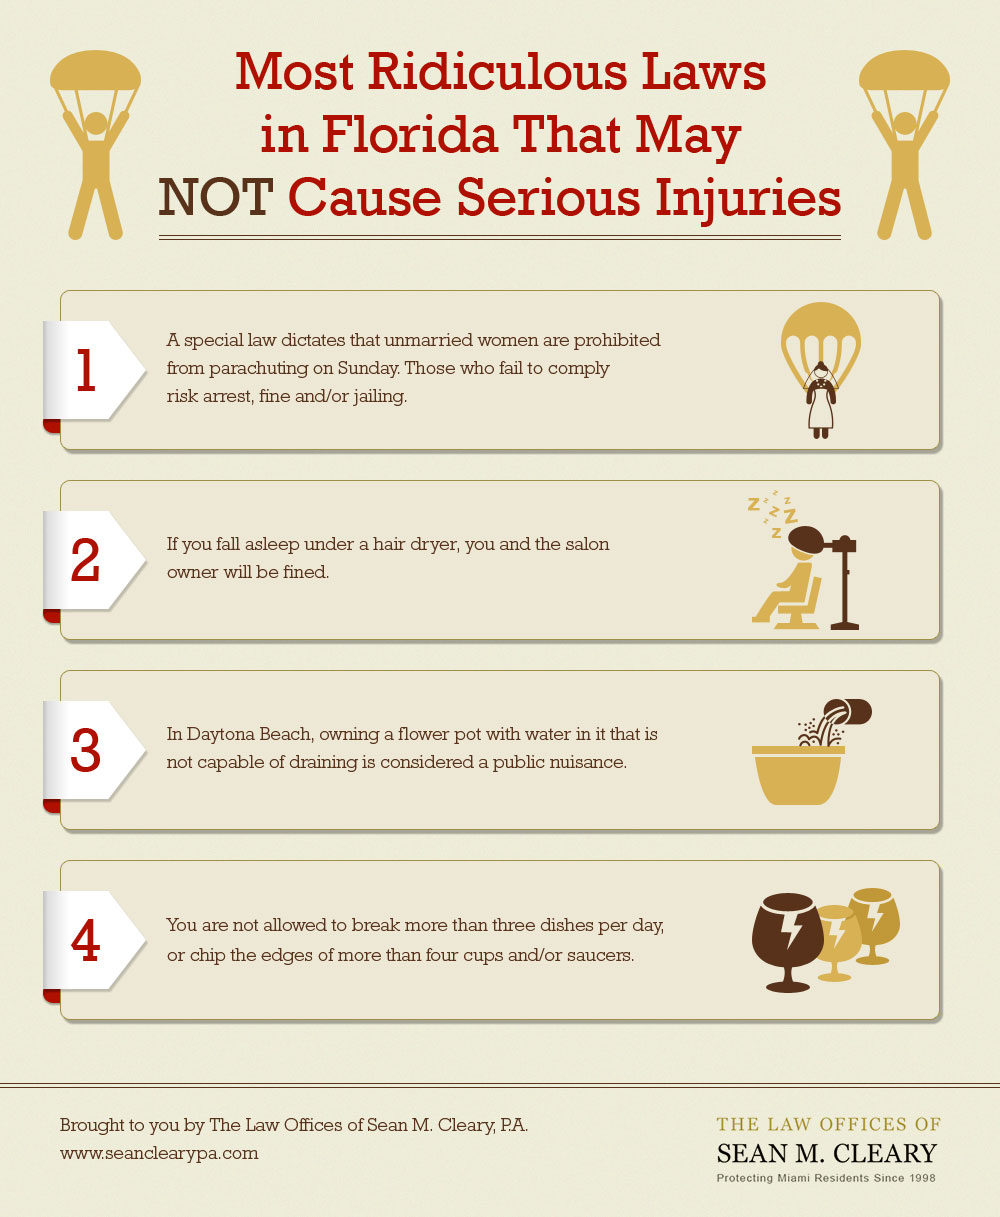 Most Ridiculous Laws in Florida That May NOT Cause Serious Injuries